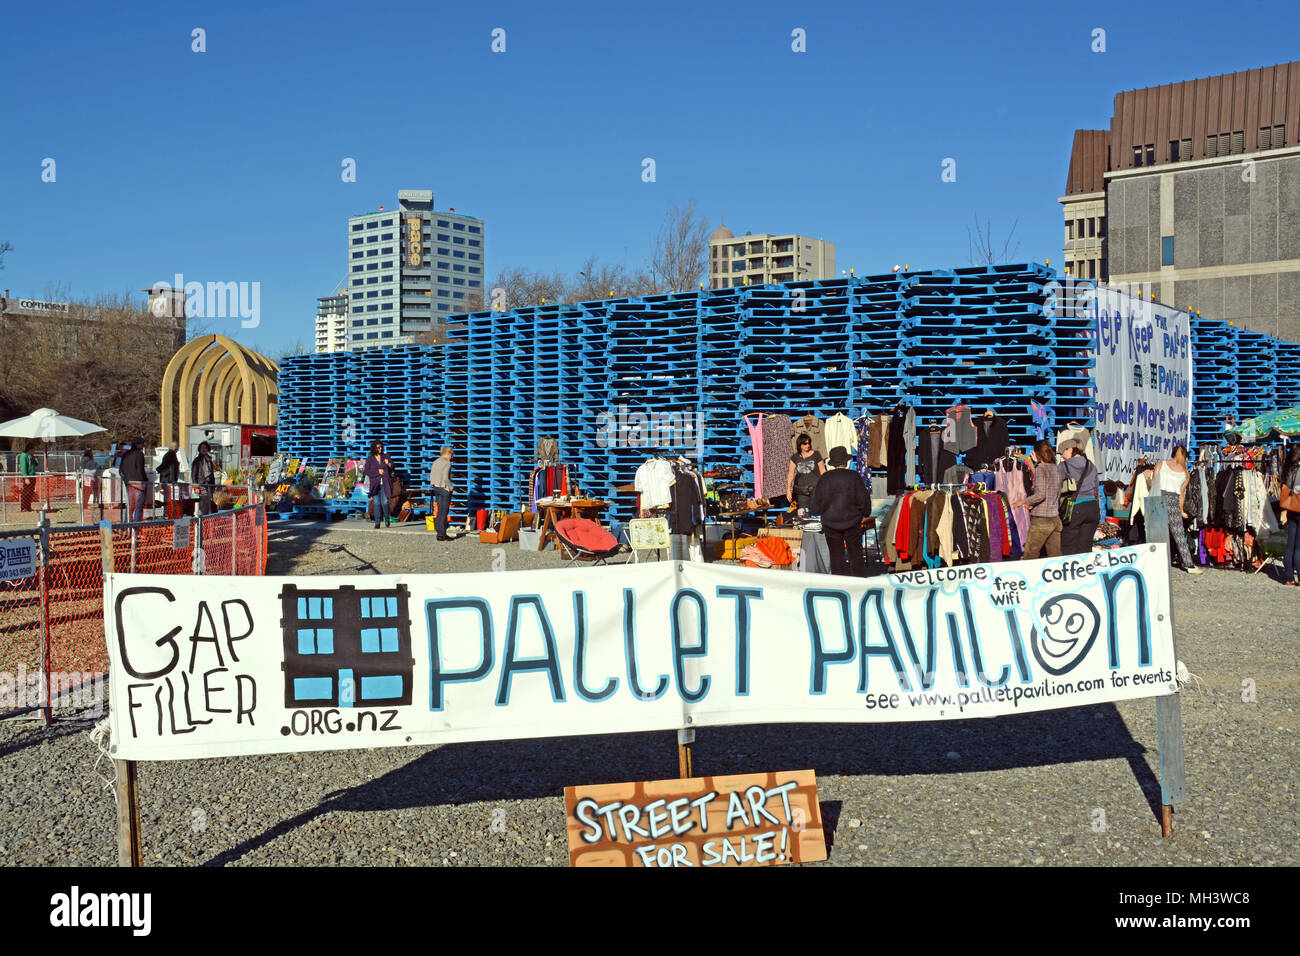 Christchurch, New Zealand - June 08, 2013: A wooden Pallet Pavilion market has been built in central Christchurch on a site previously occupied by sho - Stock Image